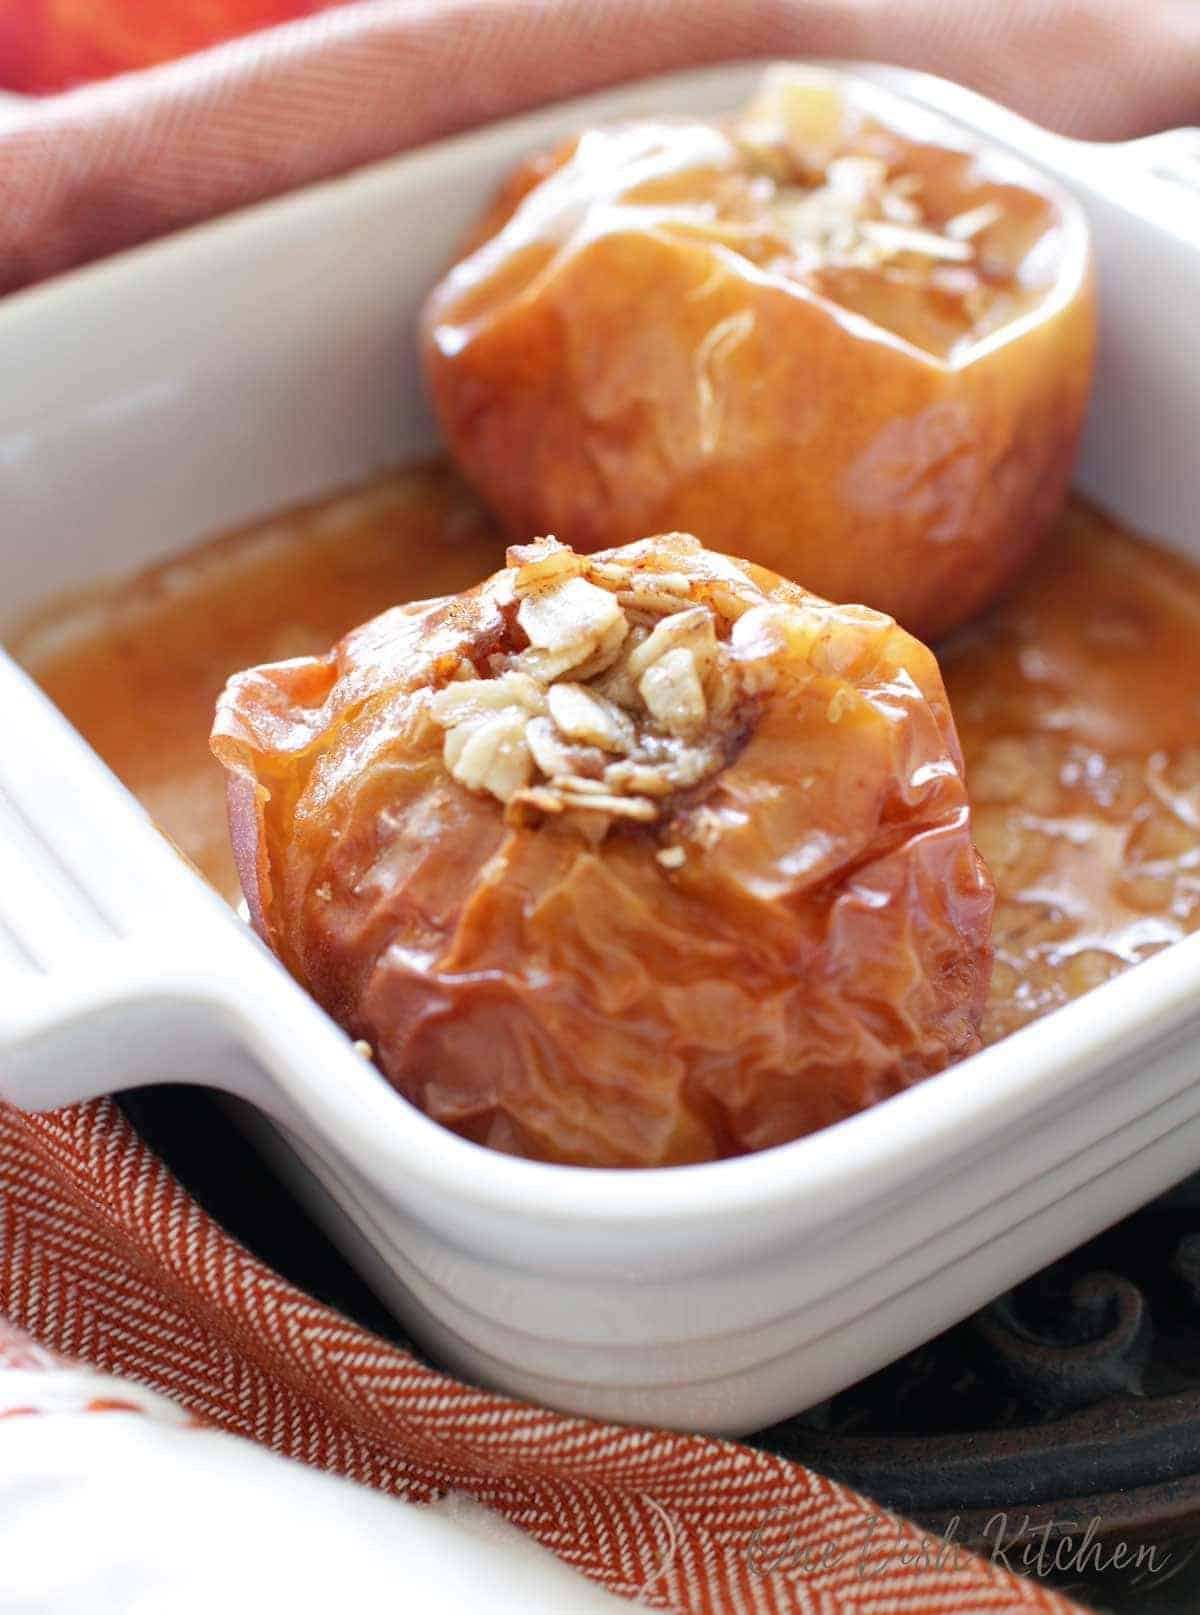 Two baked apples in a small baking dish filled with oats and brown sugar